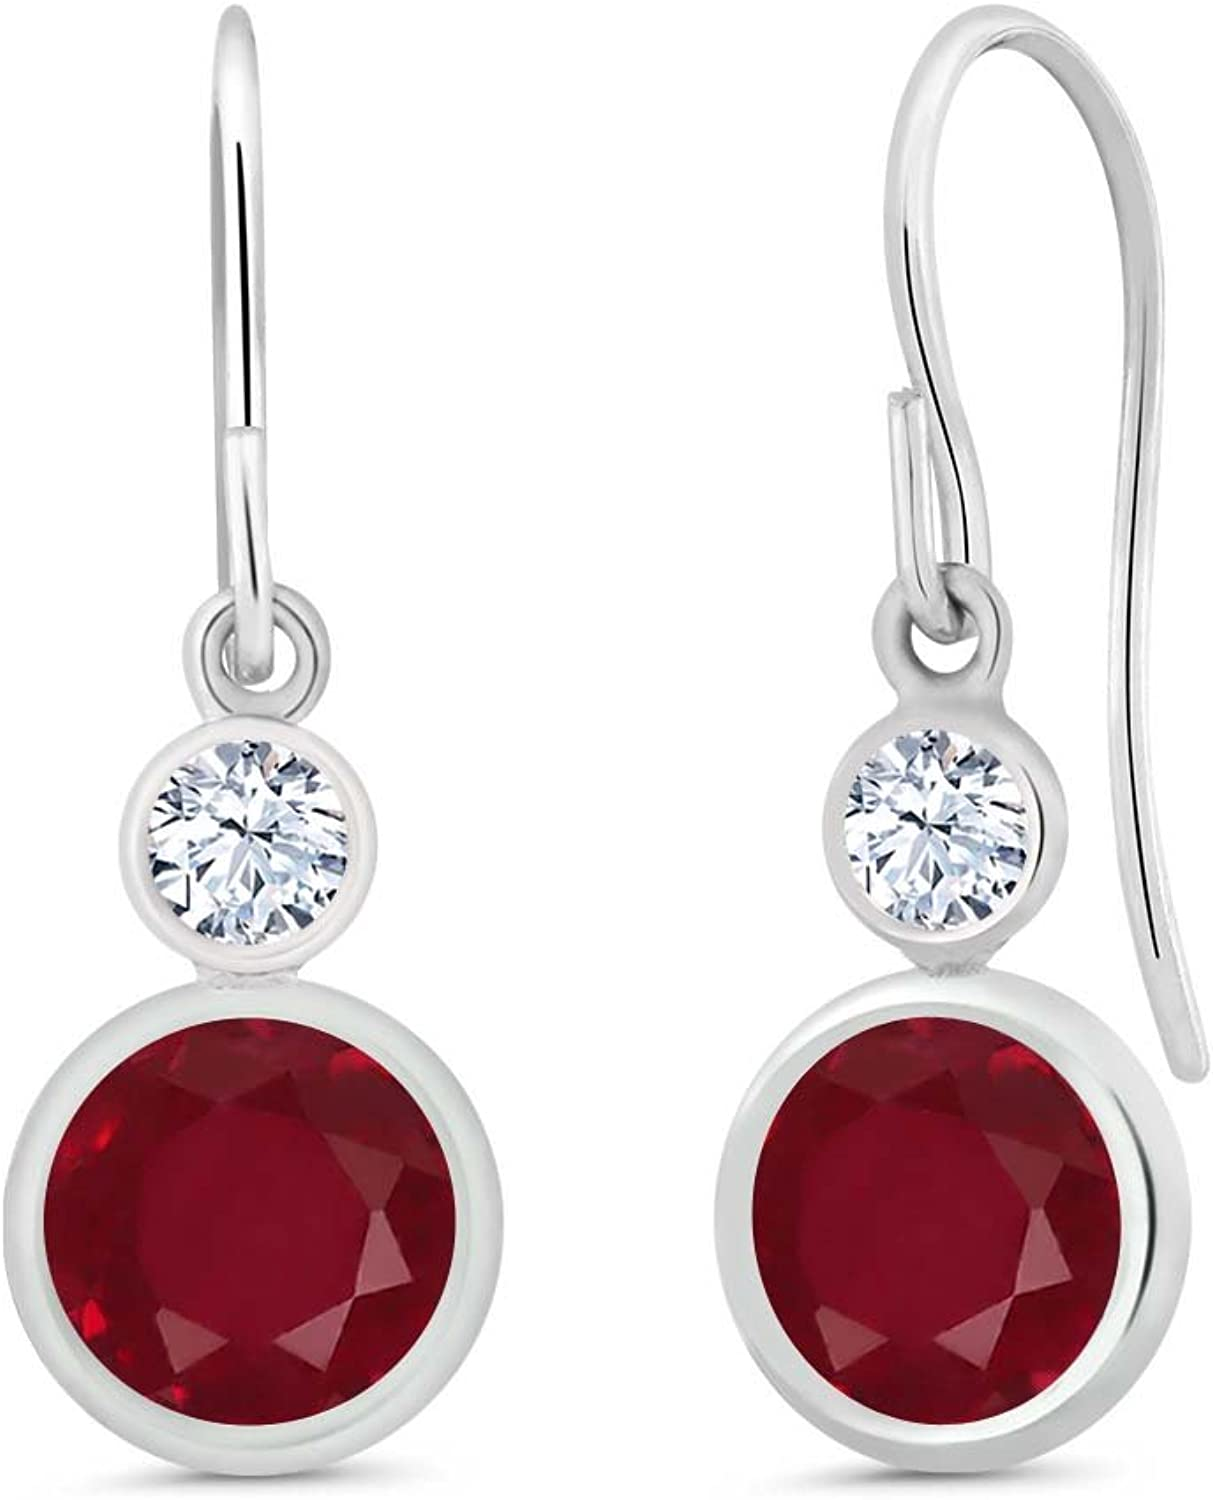 2.32 Ct Round Red Ruby 925 Sterling Silver Earrings